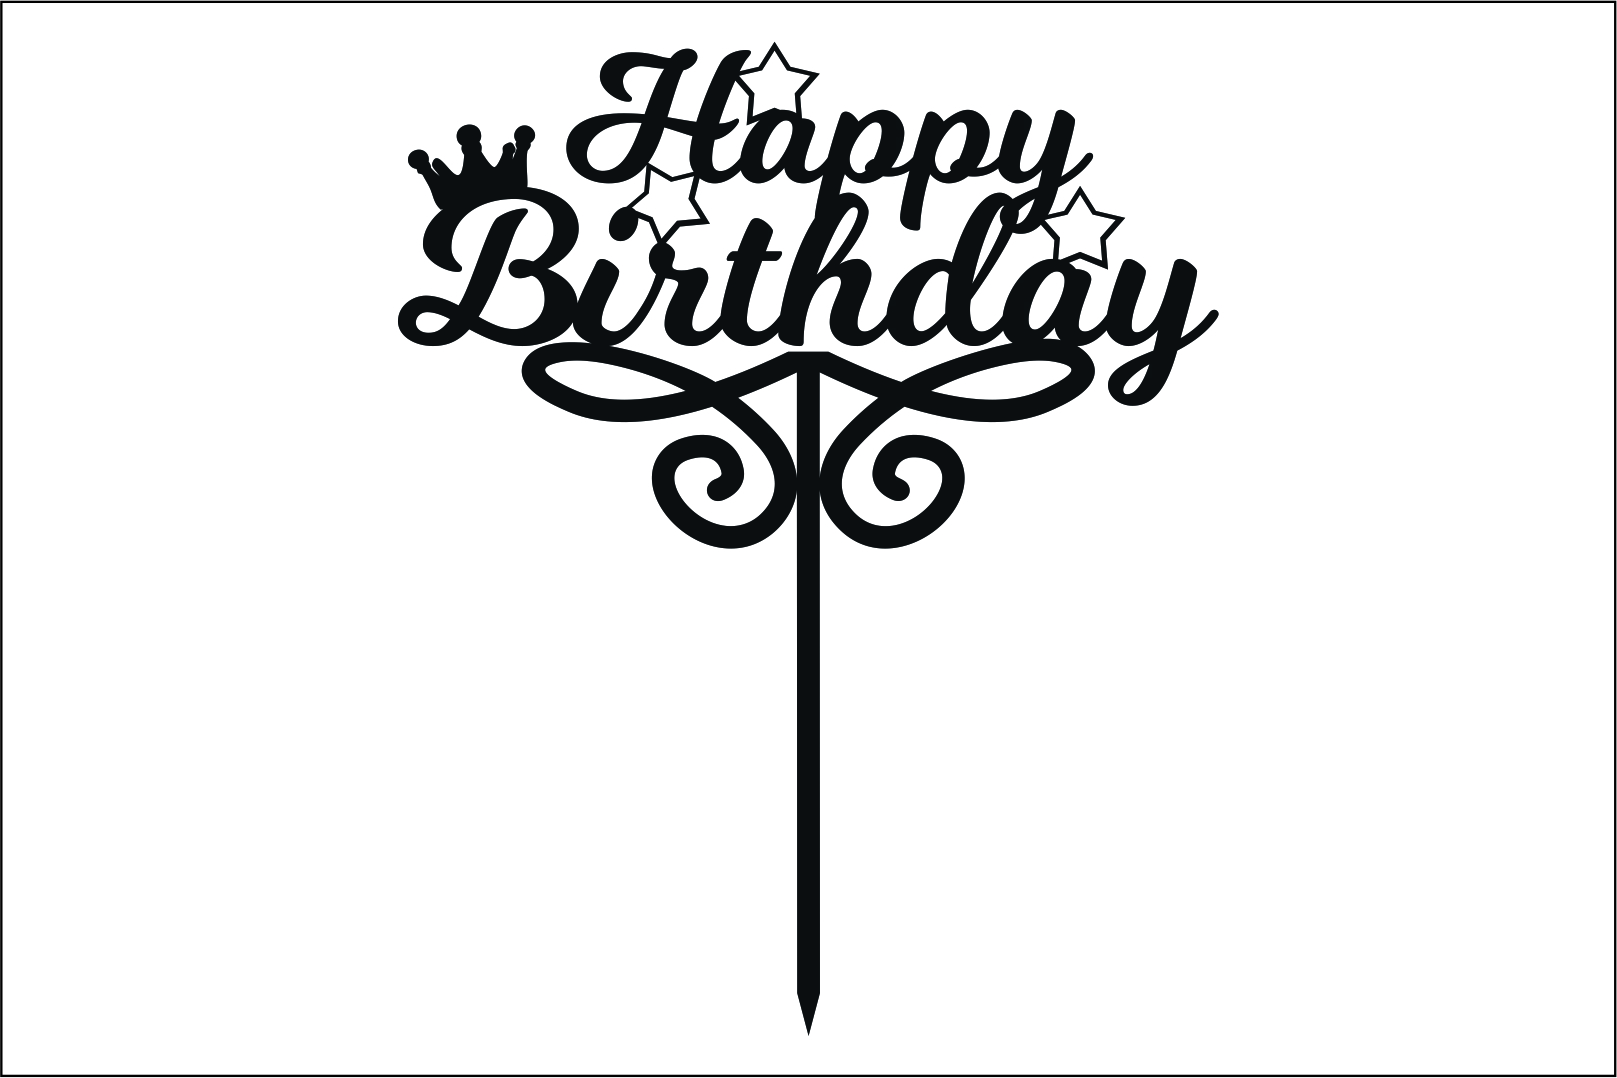 Download Free Happy Birthday Topper Laser Cutting Graphic By Fast Store for Cricut Explore, Silhouette and other cutting machines.